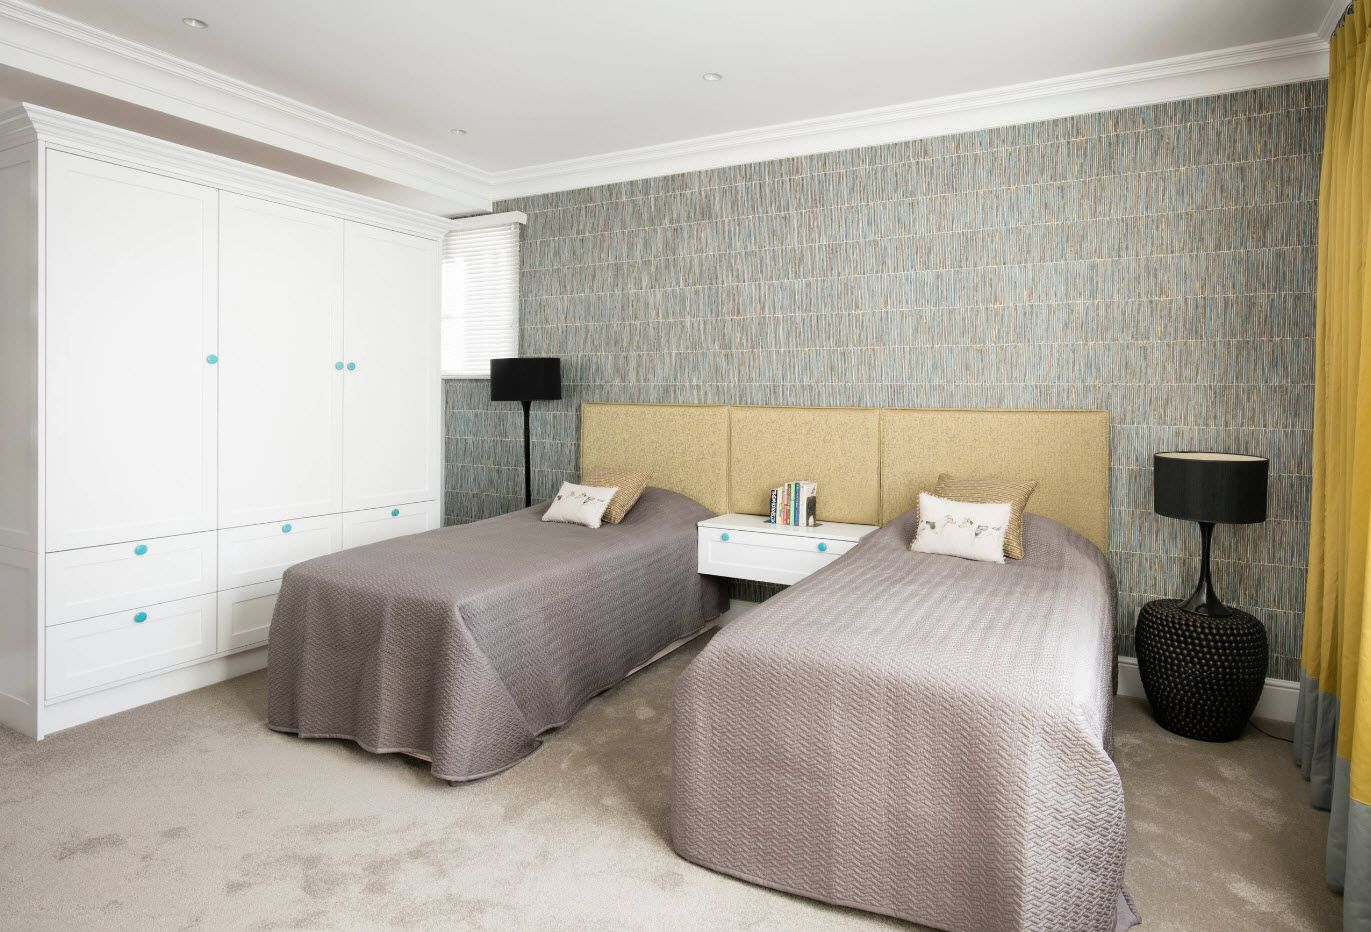 Bold idea for bedroom for two in minimalism